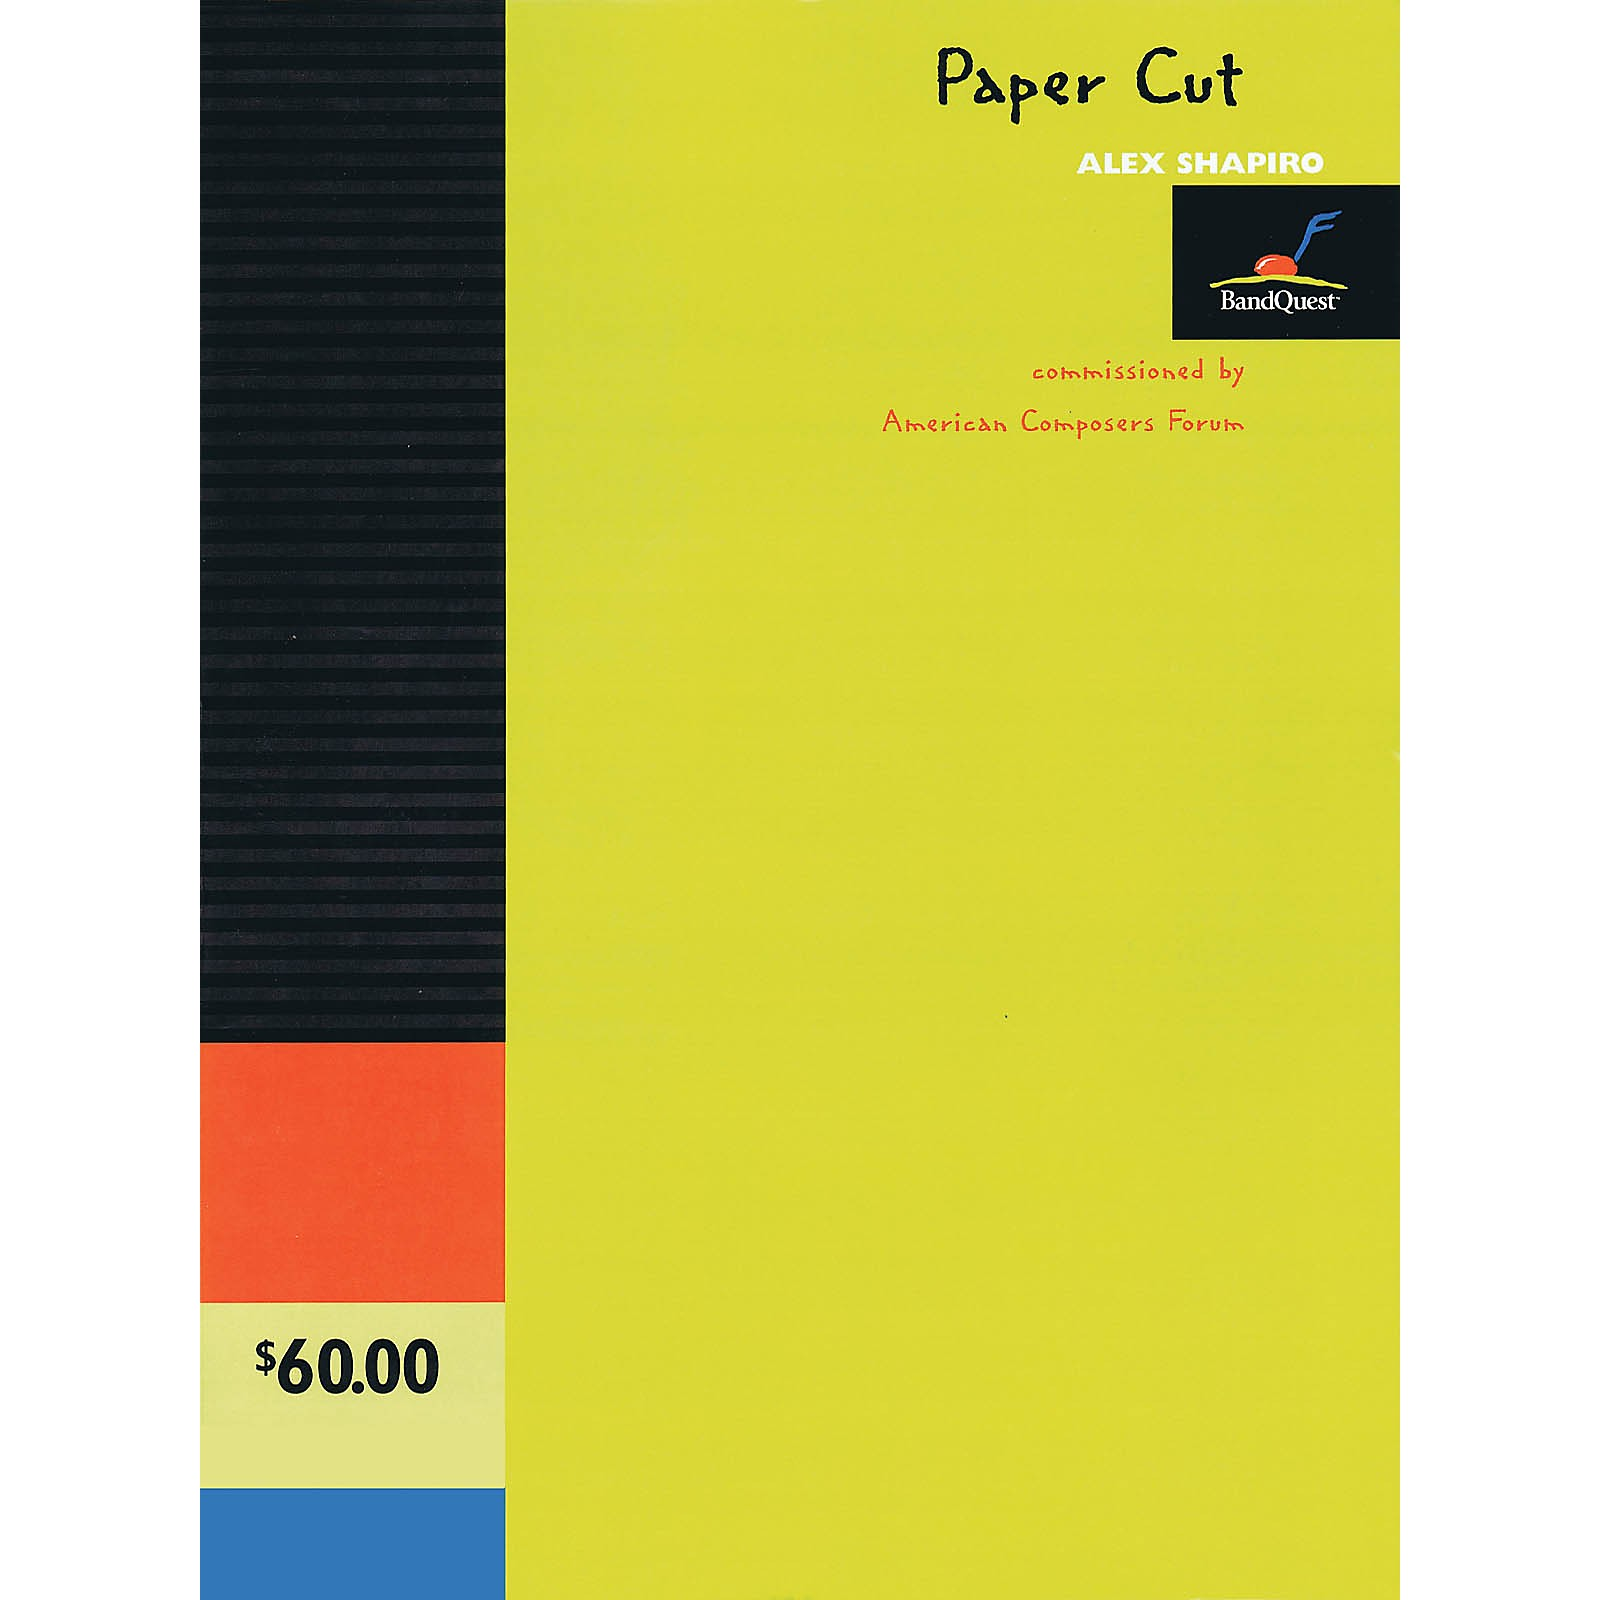 American Composers Forum Paper Cut (BandQuest Series Grade 3) Concert Band Level 3 Composed by Alex Shapiro